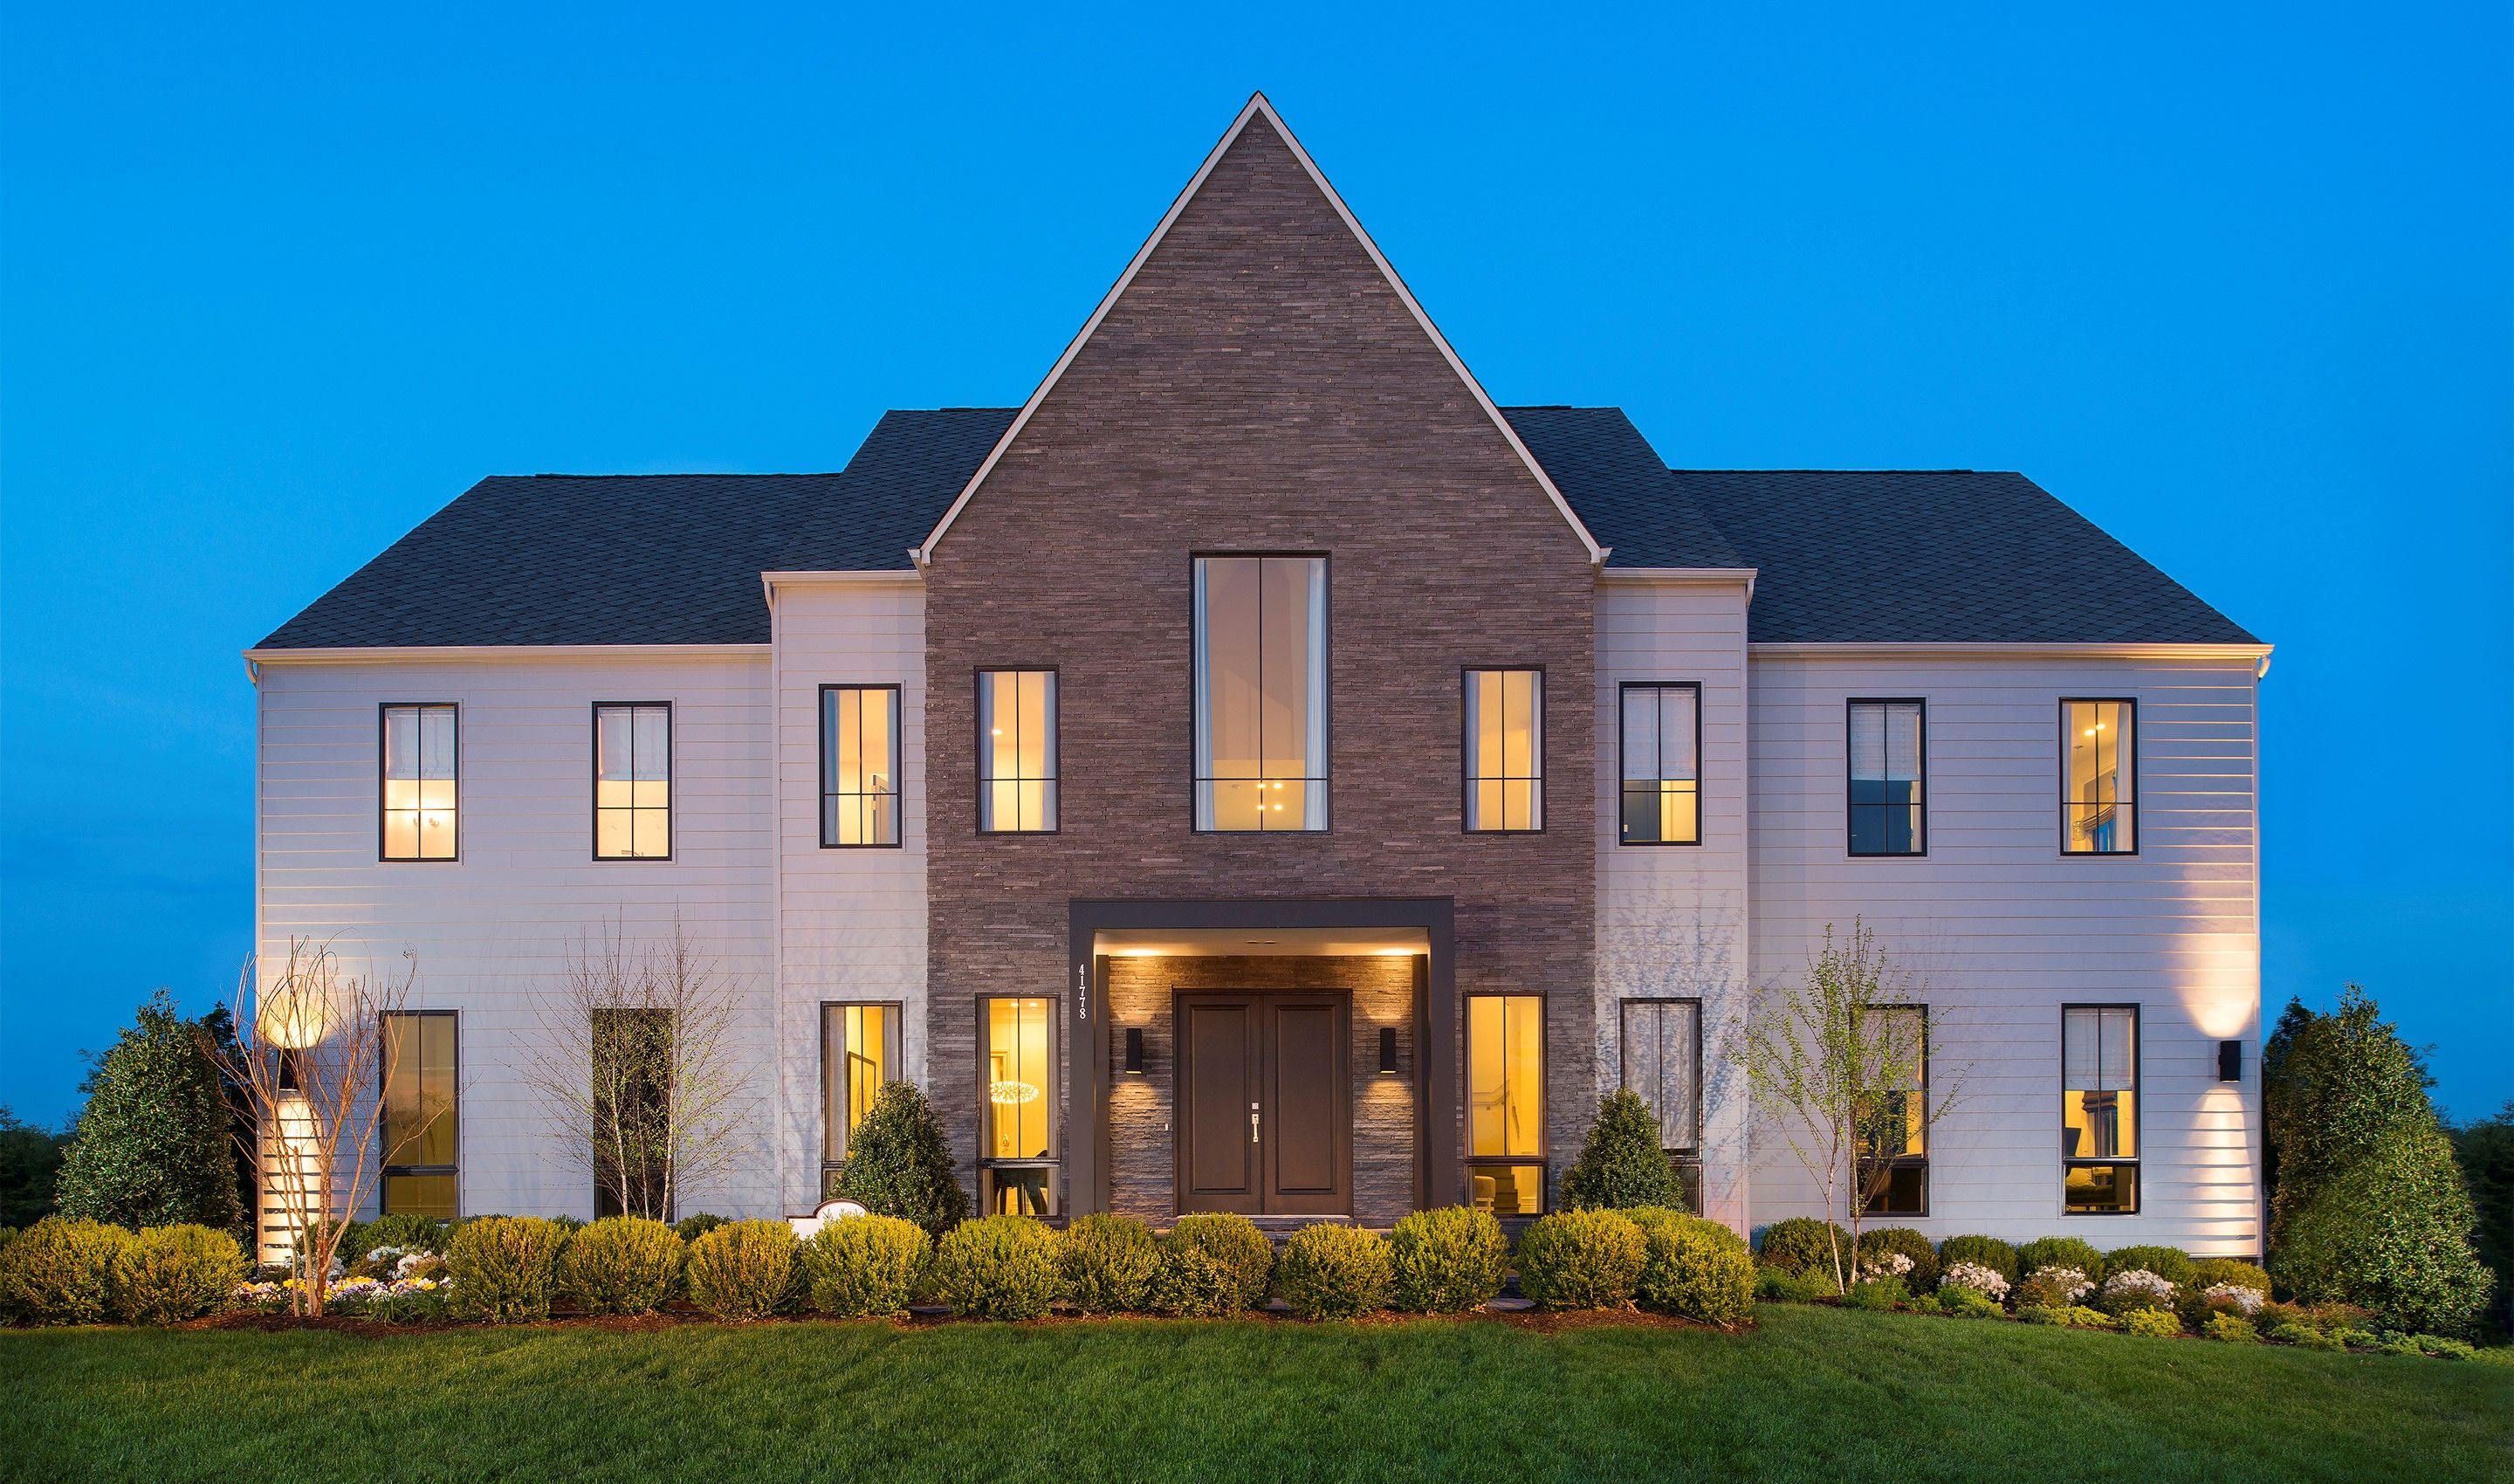 Single Family for Active at Noorderwind 10093 Spartans Hollow Great Falls, Virginia 22066 United States